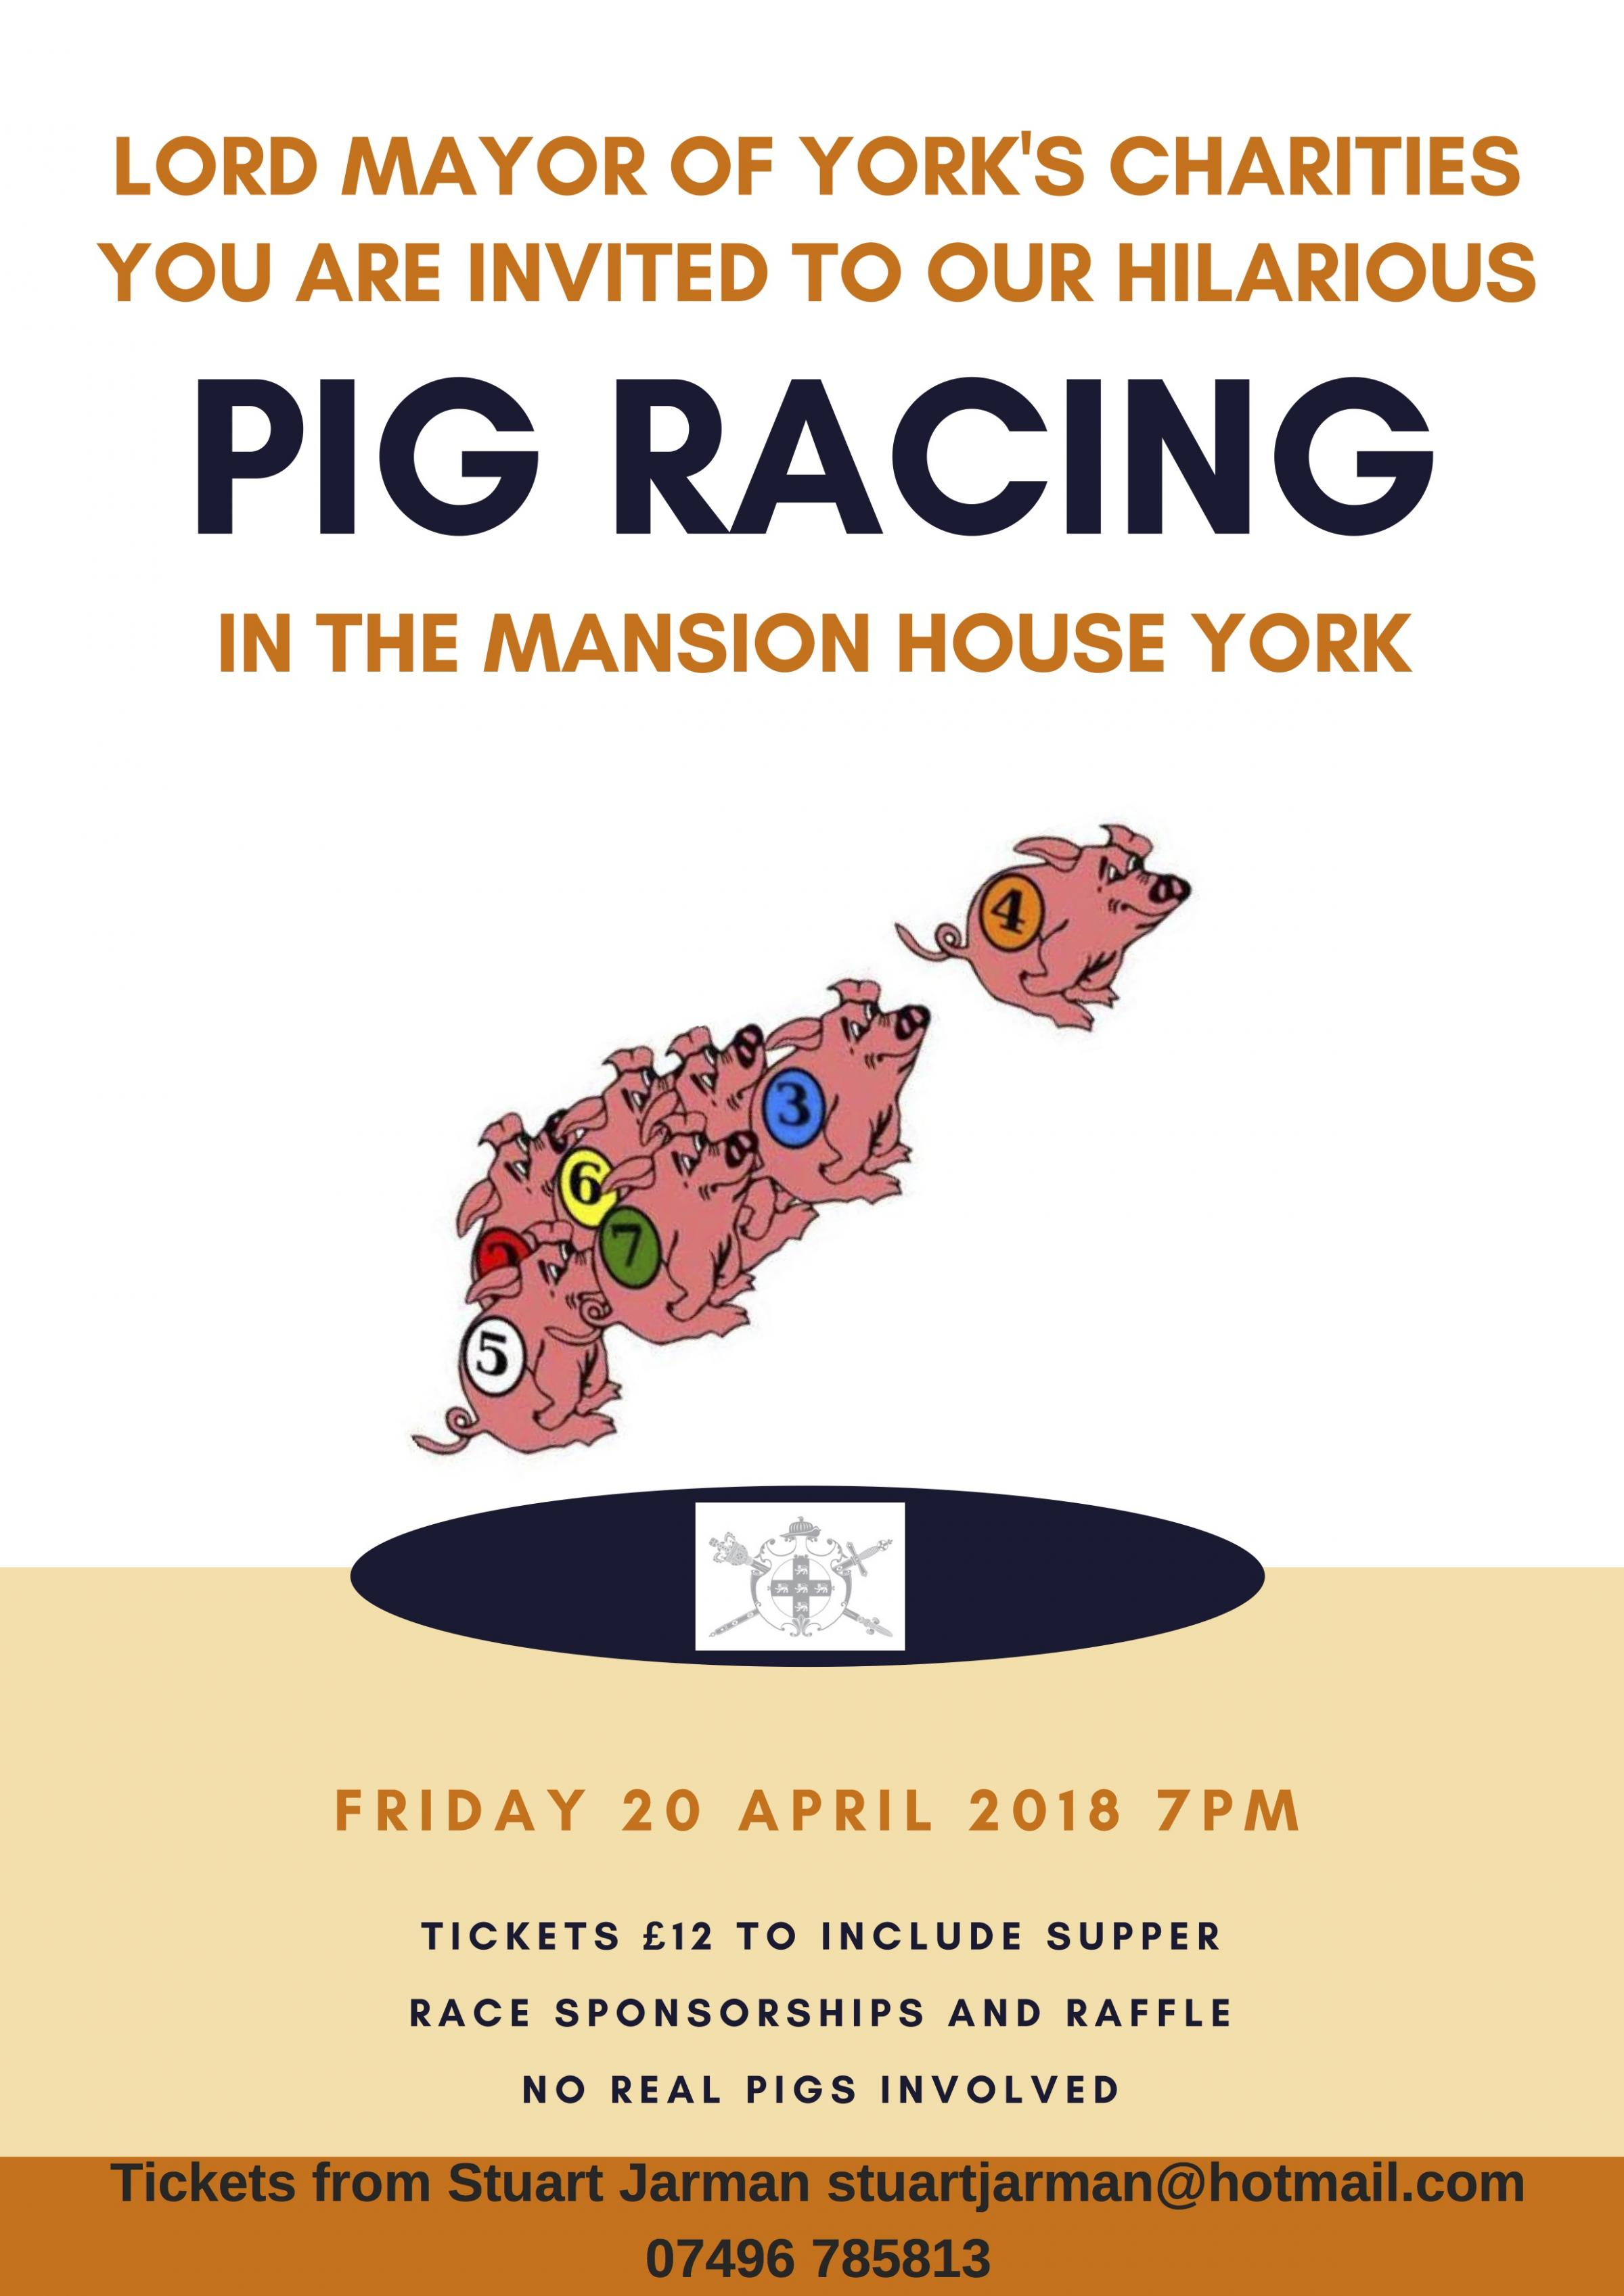 Pig Racing the Mansion House